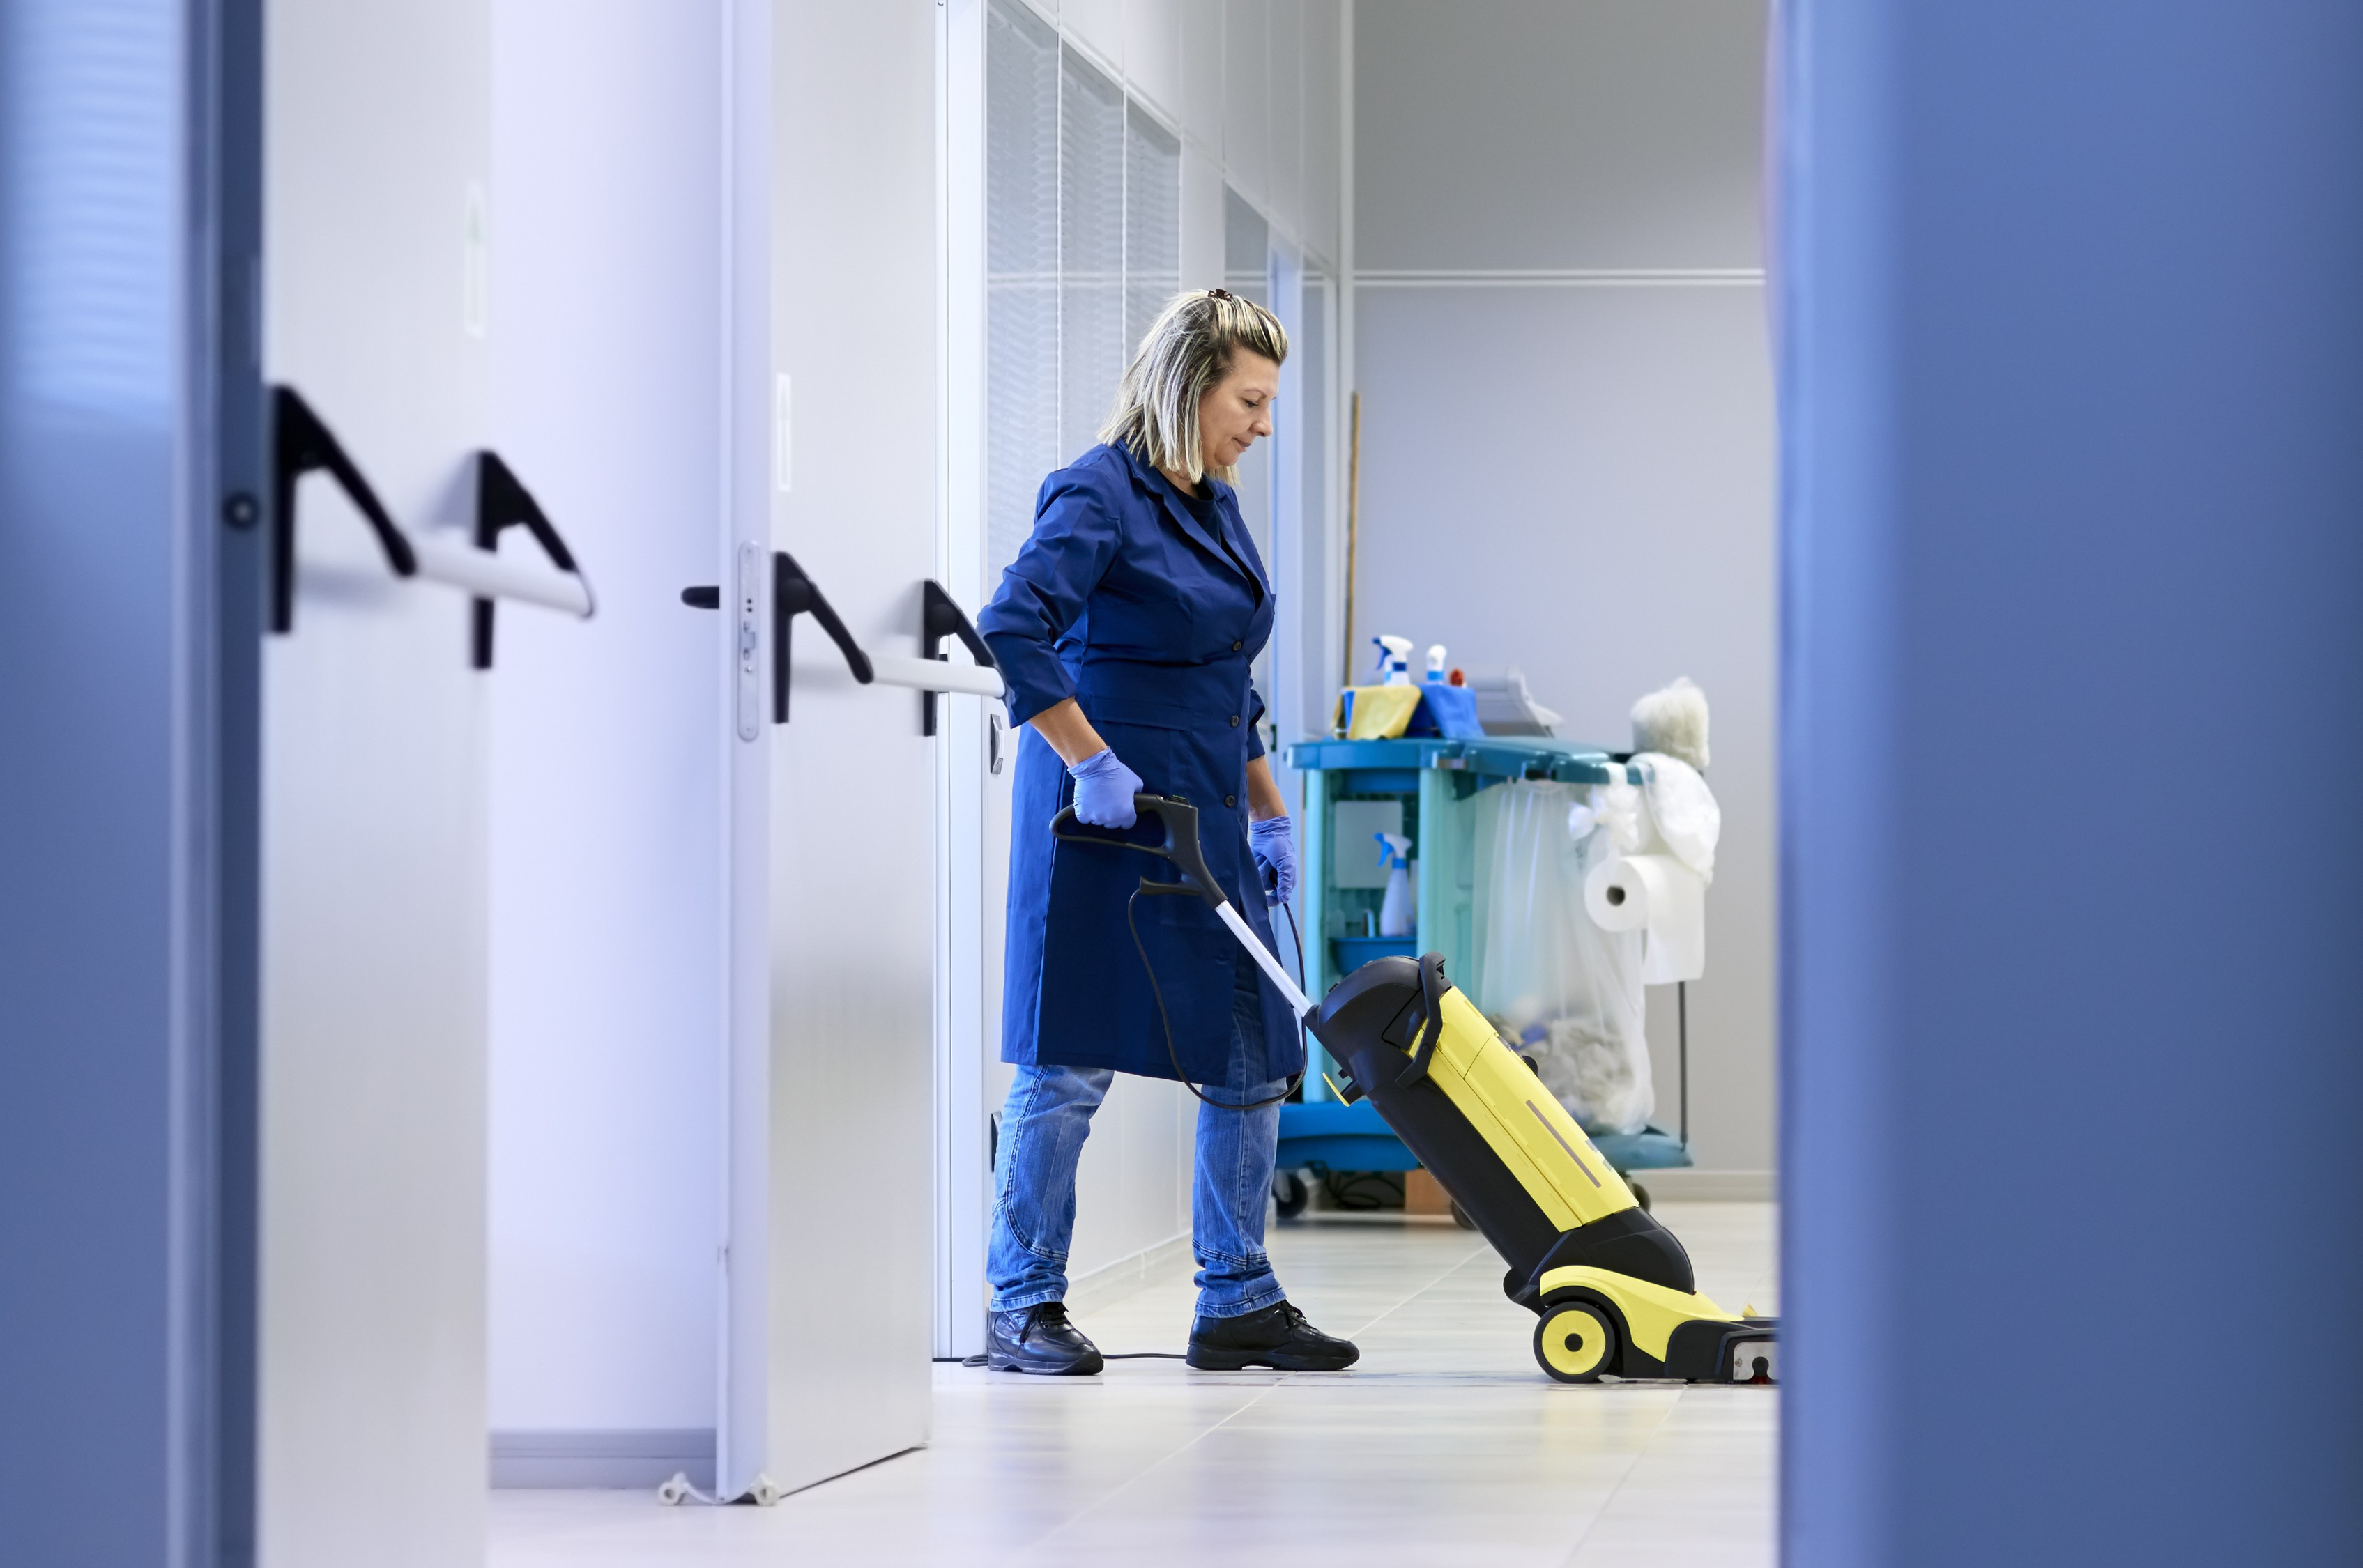 Cleaning lady with floor machine